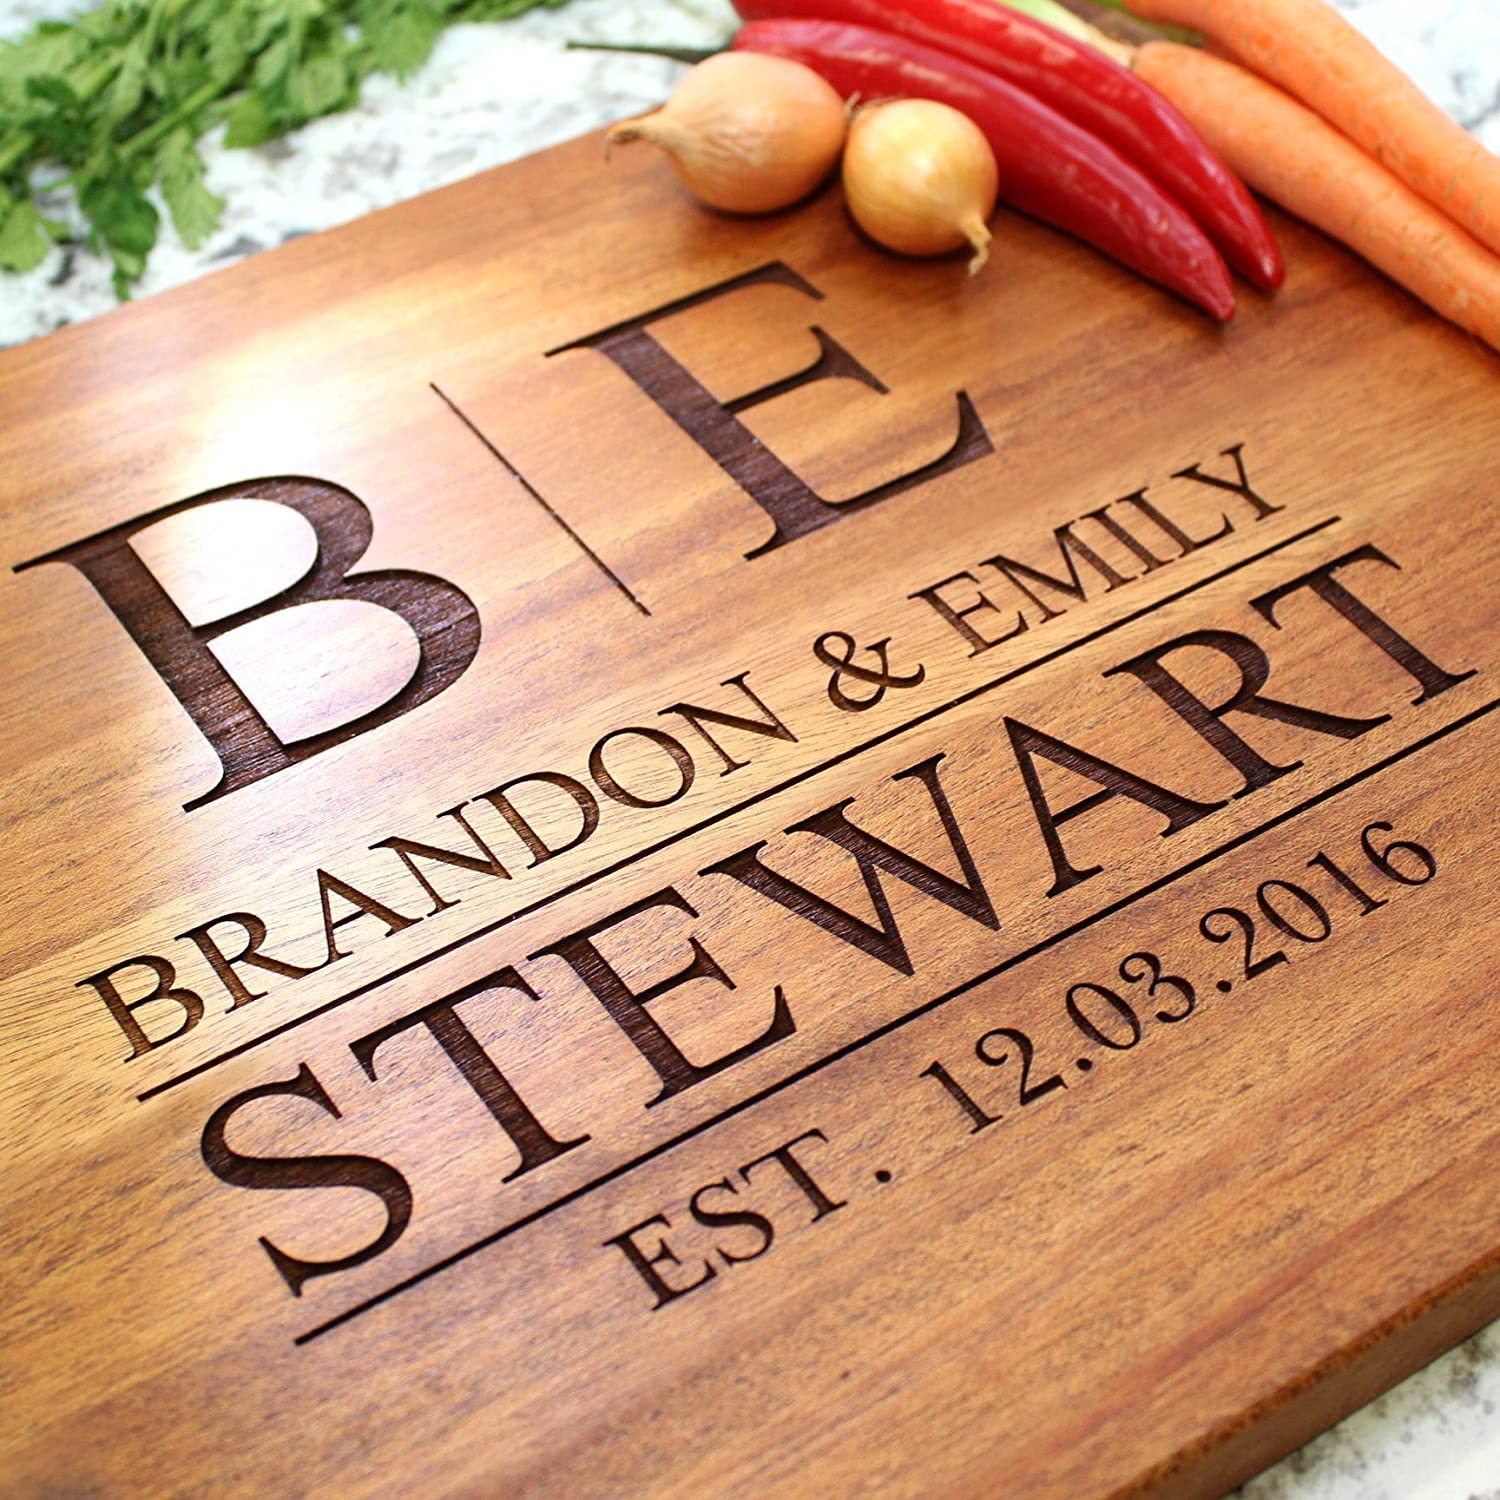 Contemporary Family Wedding Personalized Cutting Board - Engraved Cutting Board, Custom Cutting Board, Wedding Gift, Housewarming Gift, Anniversary Gift, Engagement W-009GB